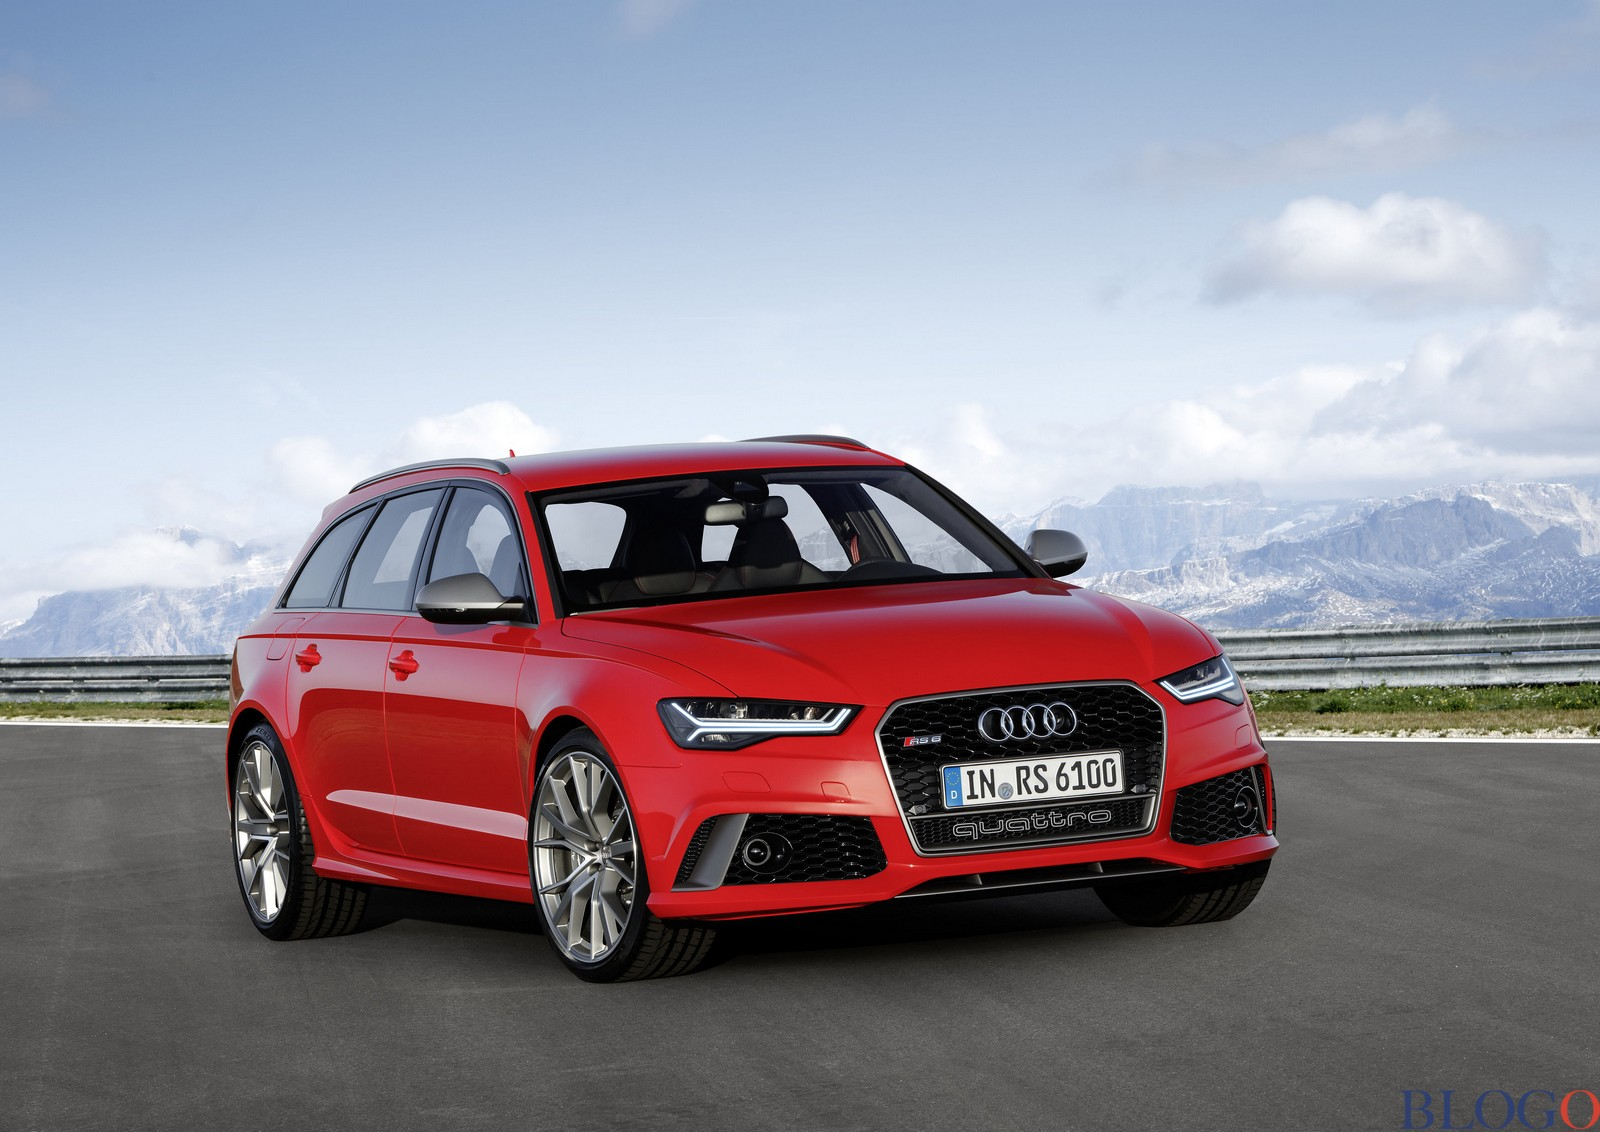 Nuove Audi Rsq2 Rsq5 Rs6 Ed Rs7 Sportback